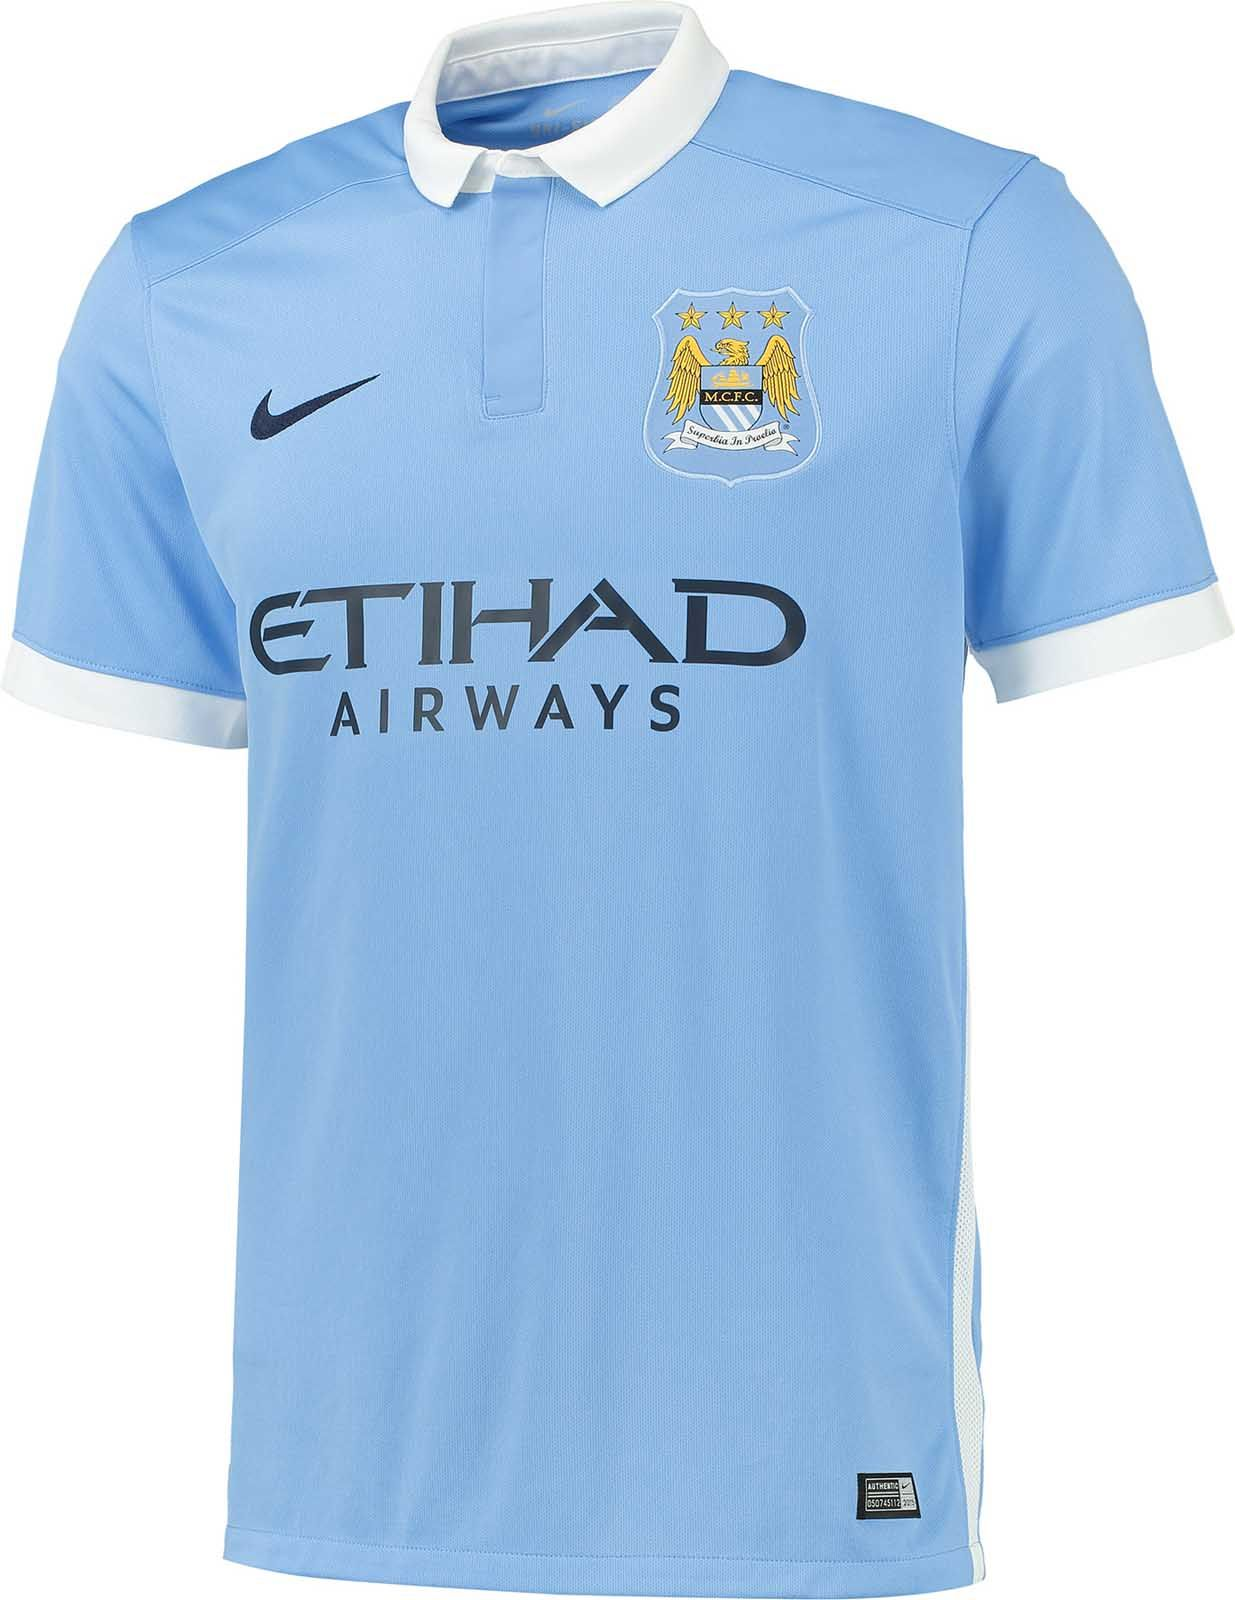 Manchester City 15-16 Home Kit Released  2589cedef